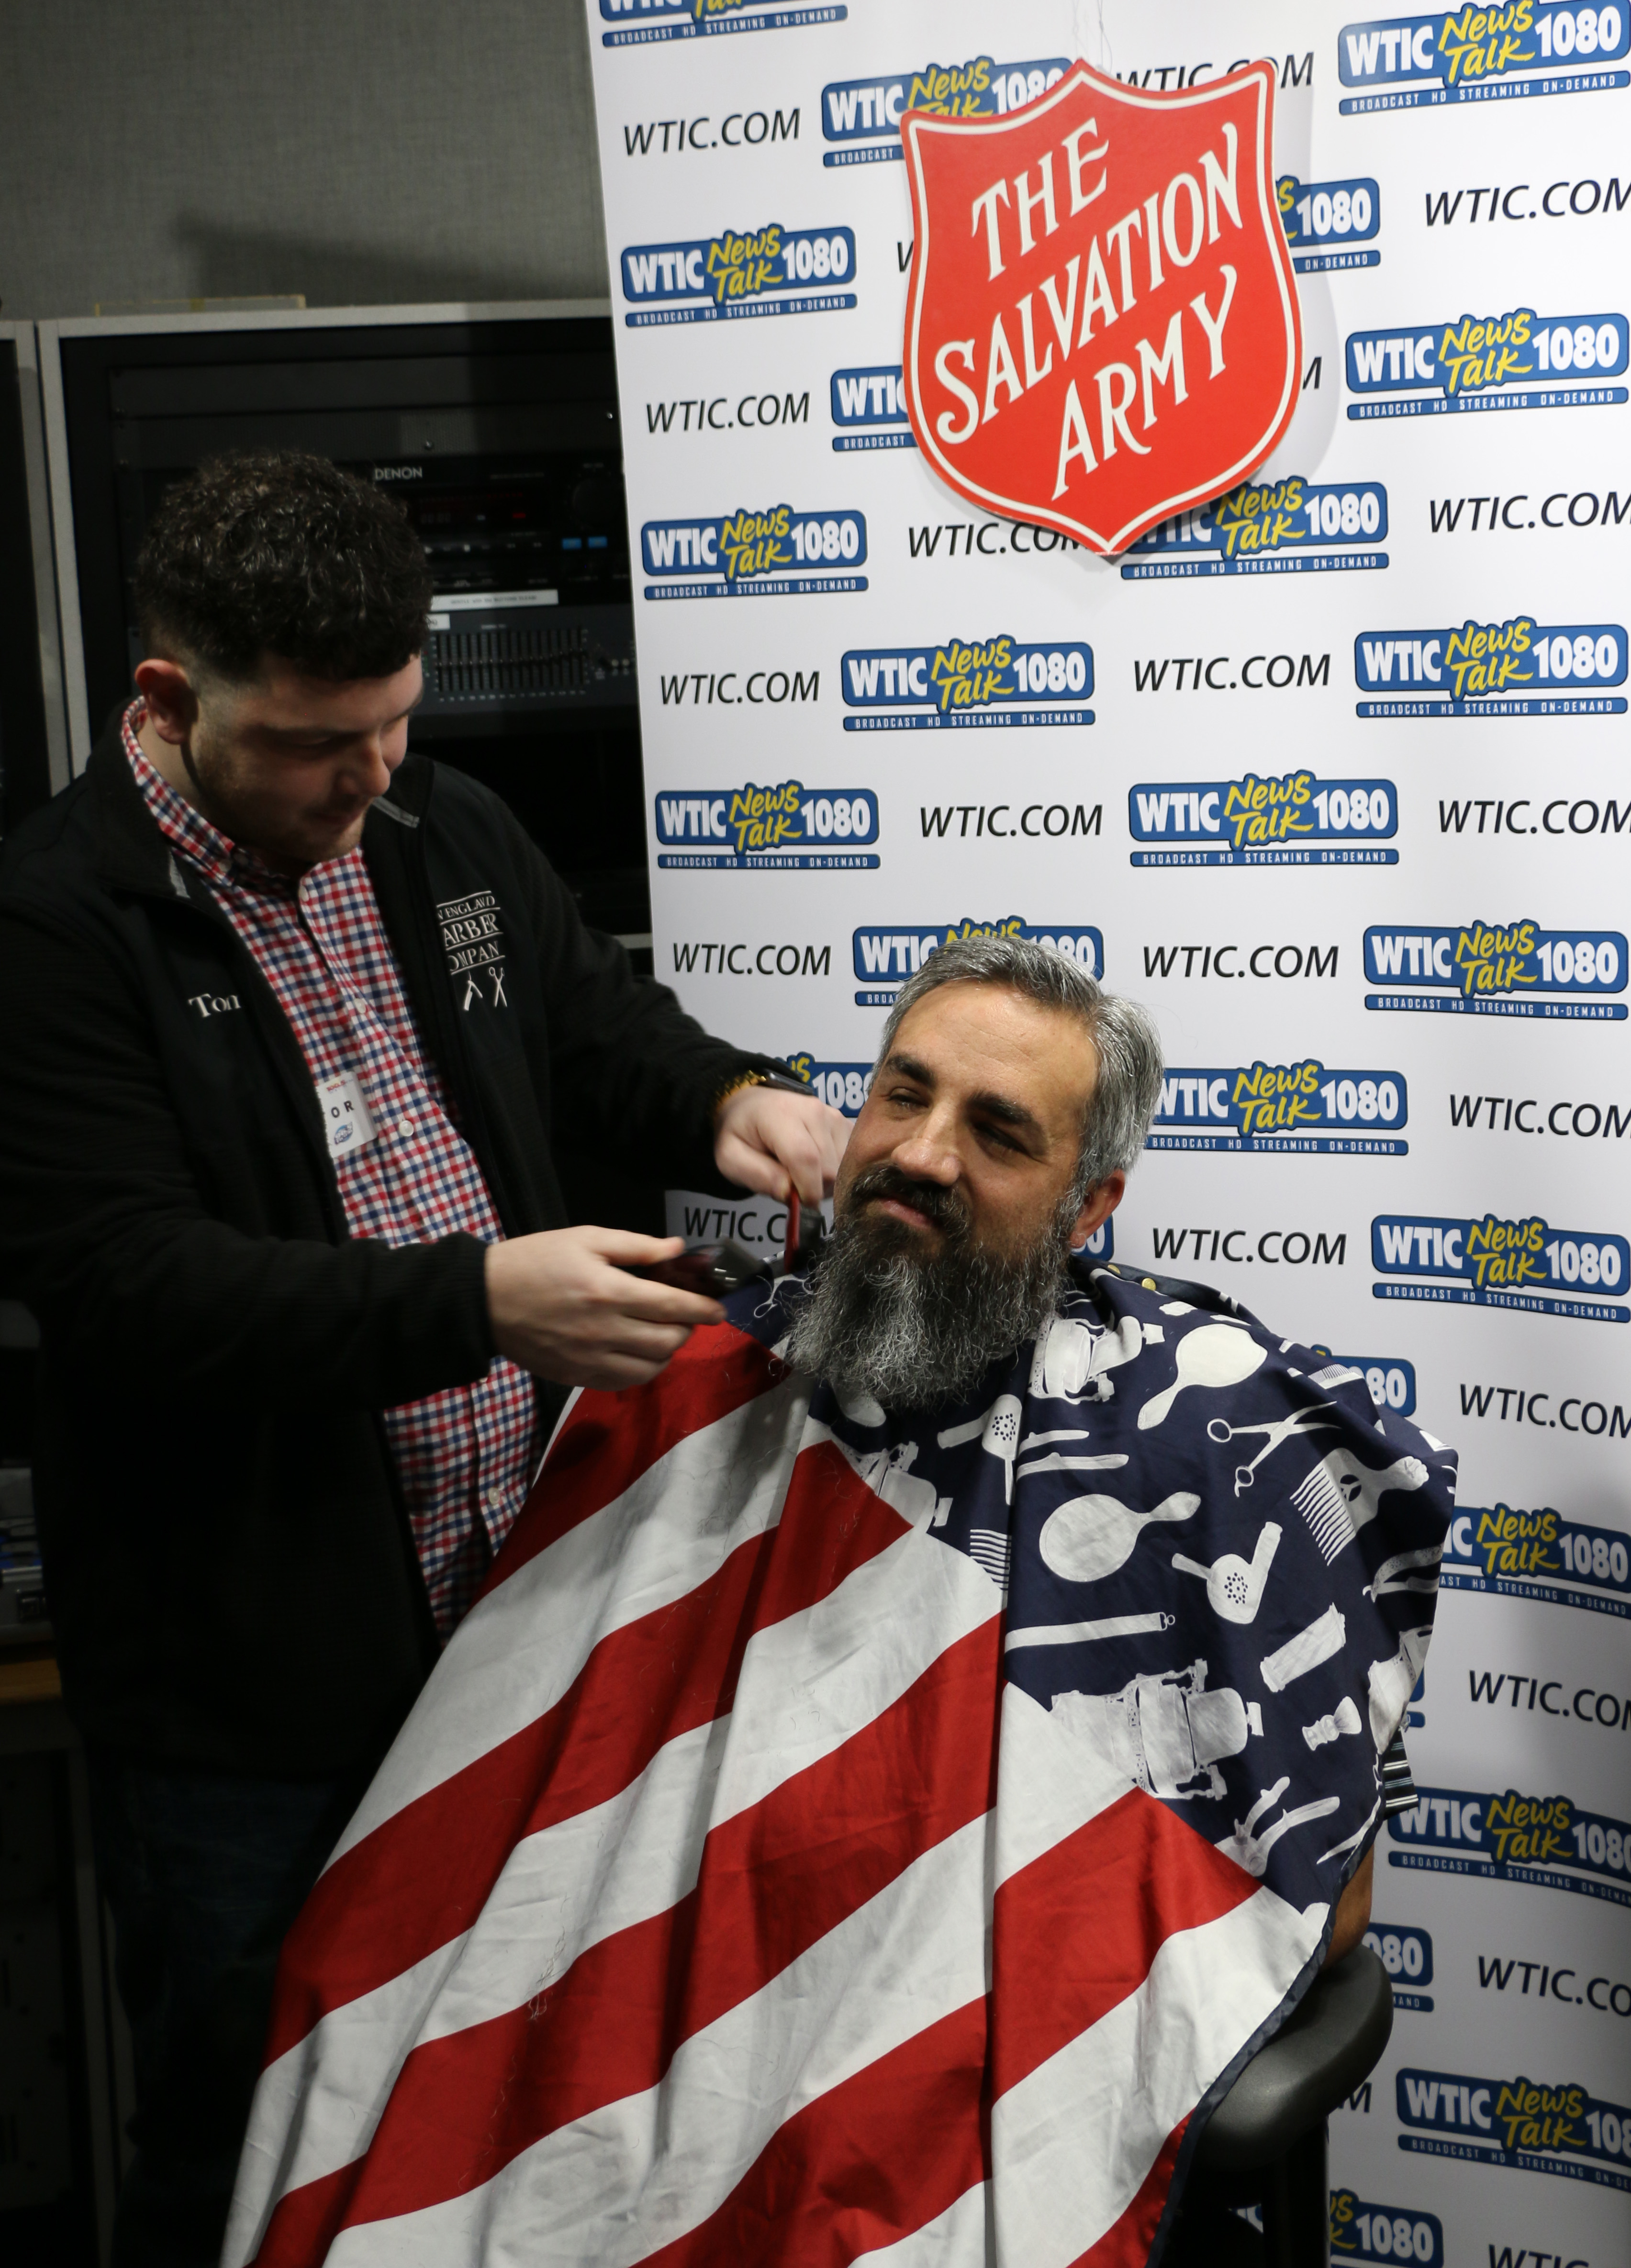 WTIC Newstalk 1080 Producer Joey Bourgoin Shaves Beard For Salvation Army